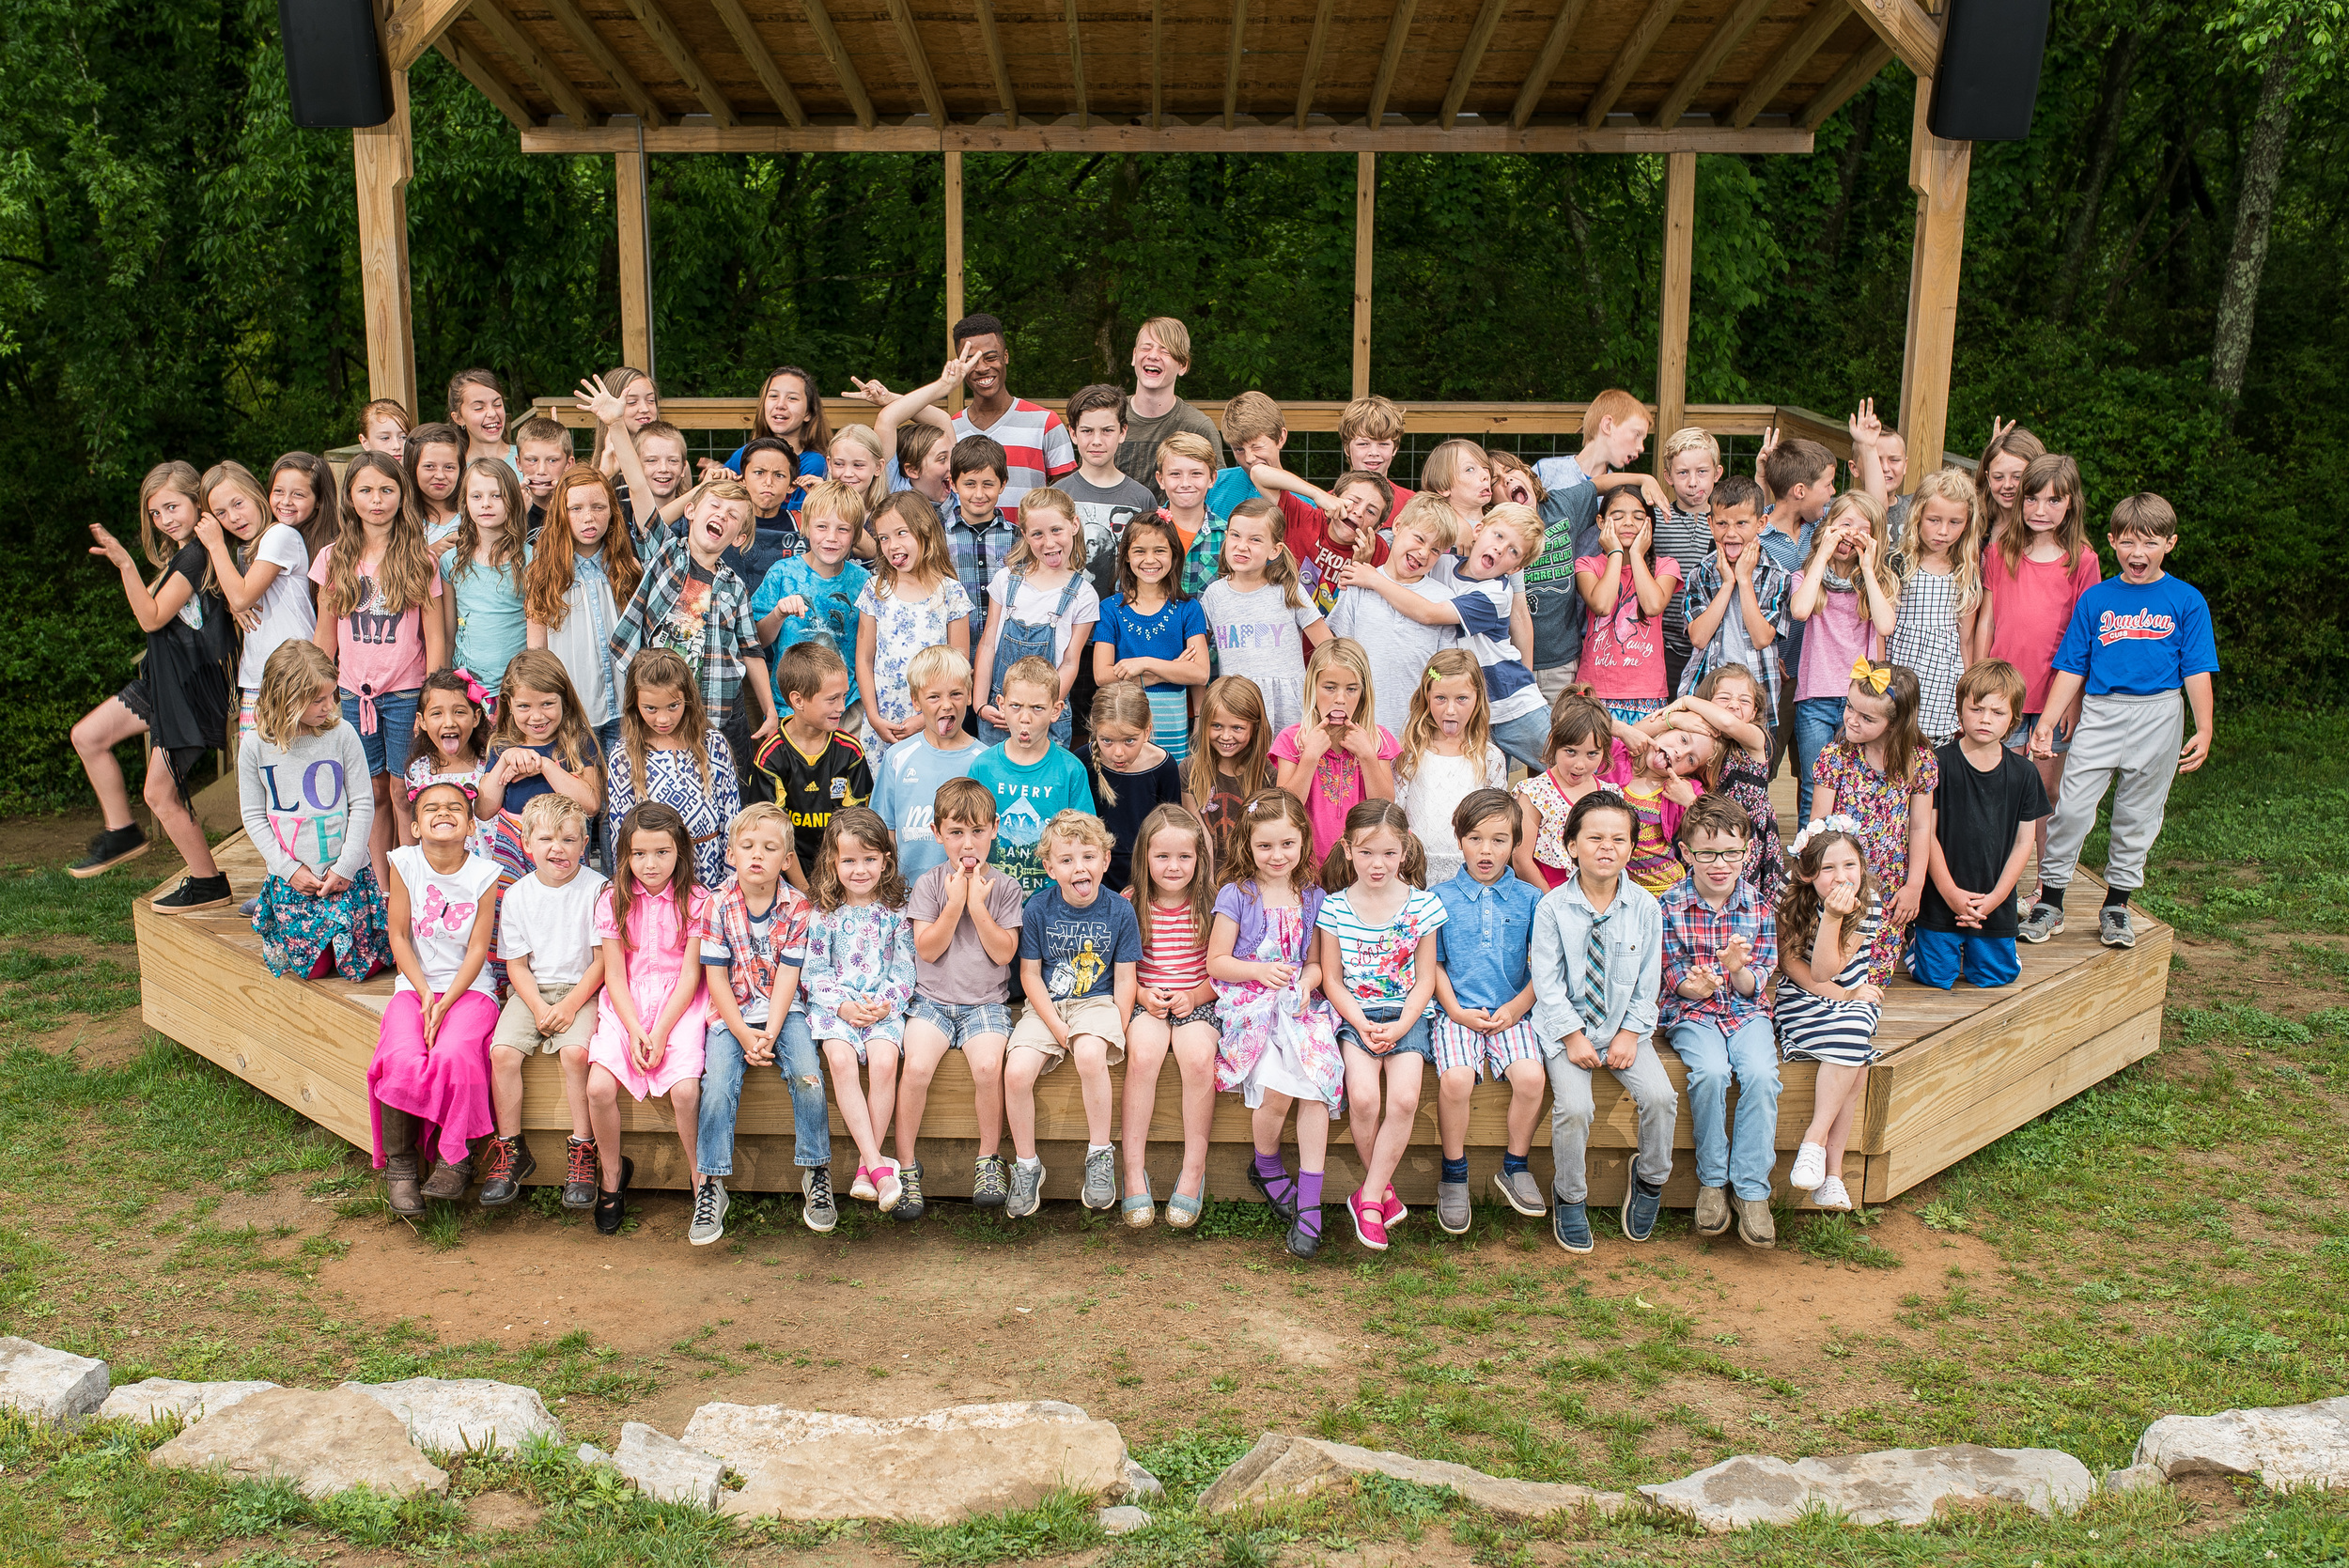 Goodbye, students! It was a tremendous year. We love you so much, and hope your summer is rich as you continue to grow and mature. Love God, love your neighbor, and we will see you again in the fall!